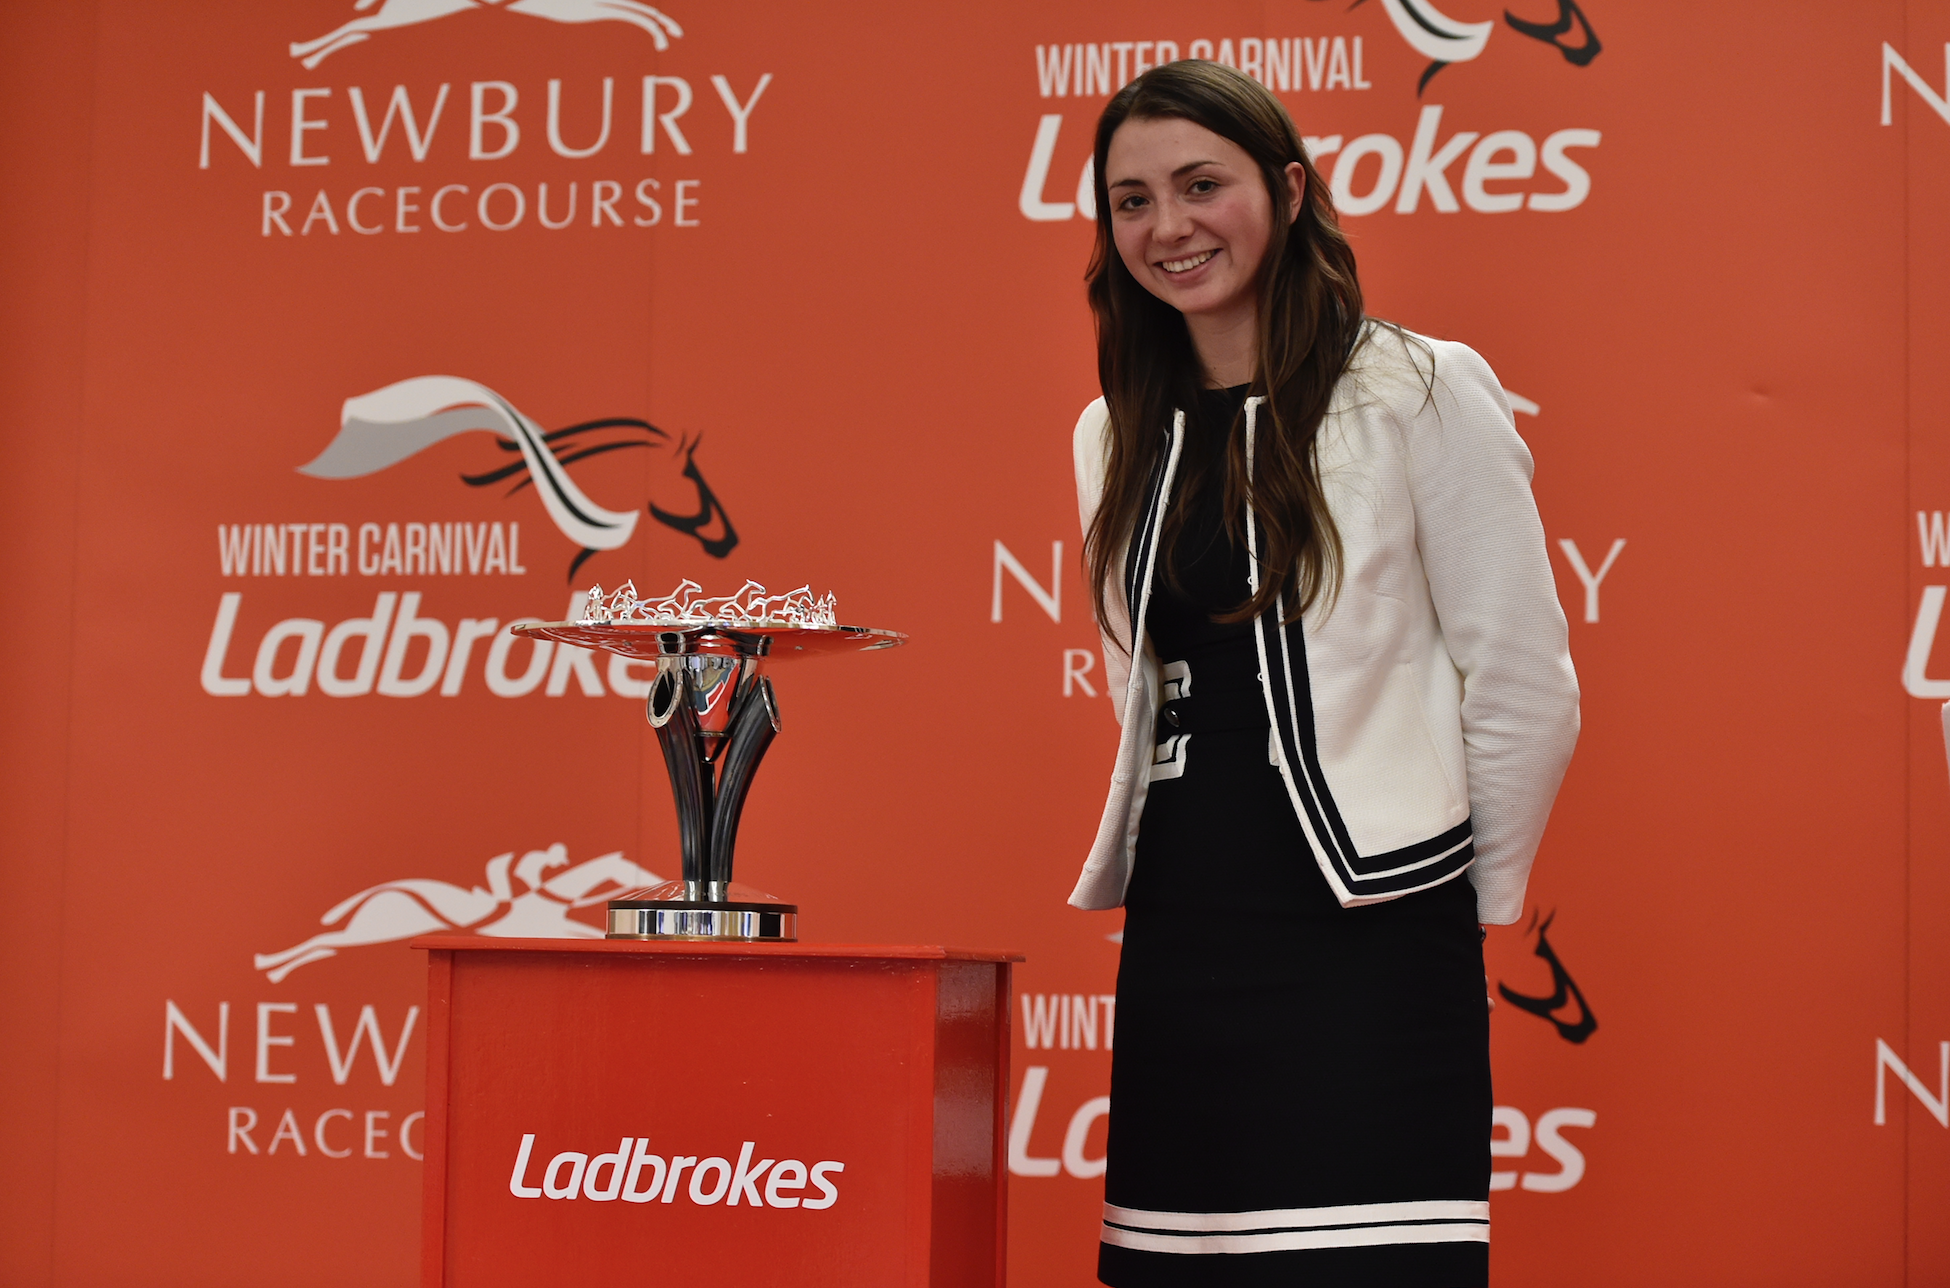 bryony frost - photo #42